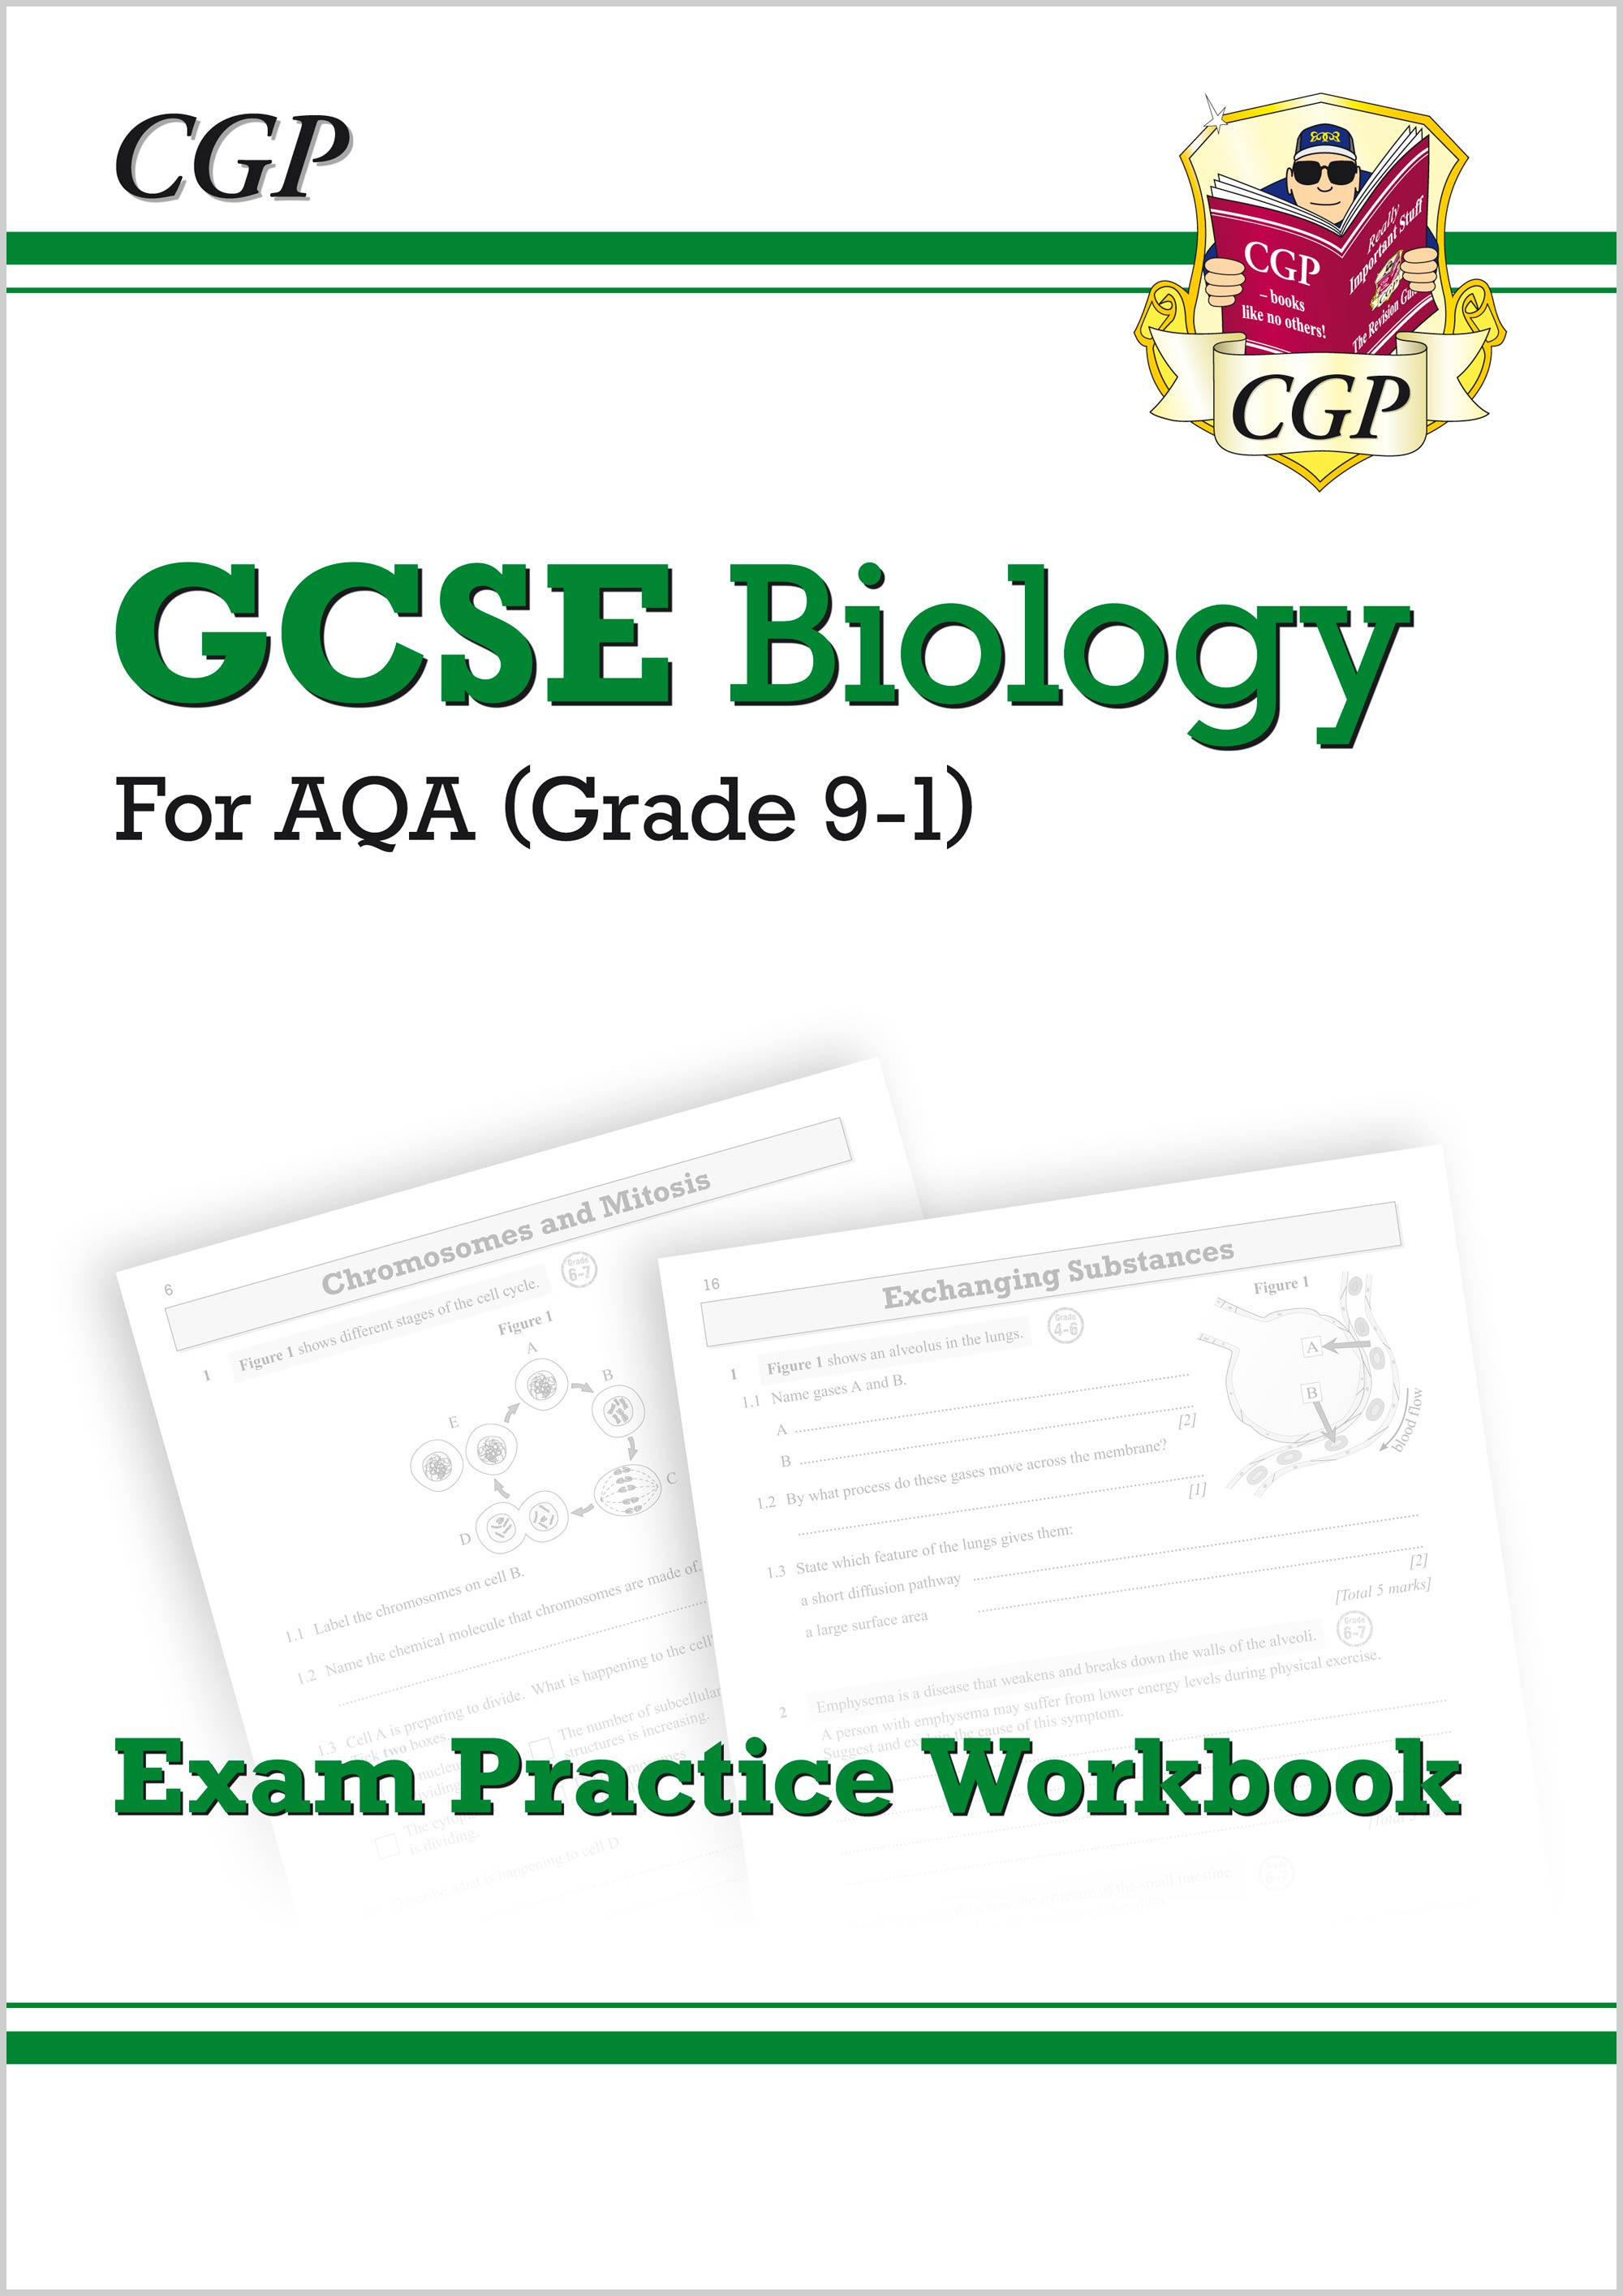 BAQ41 - Grade 9-1 GCSE Biology: AQA Exam Practice Workbook - Higher